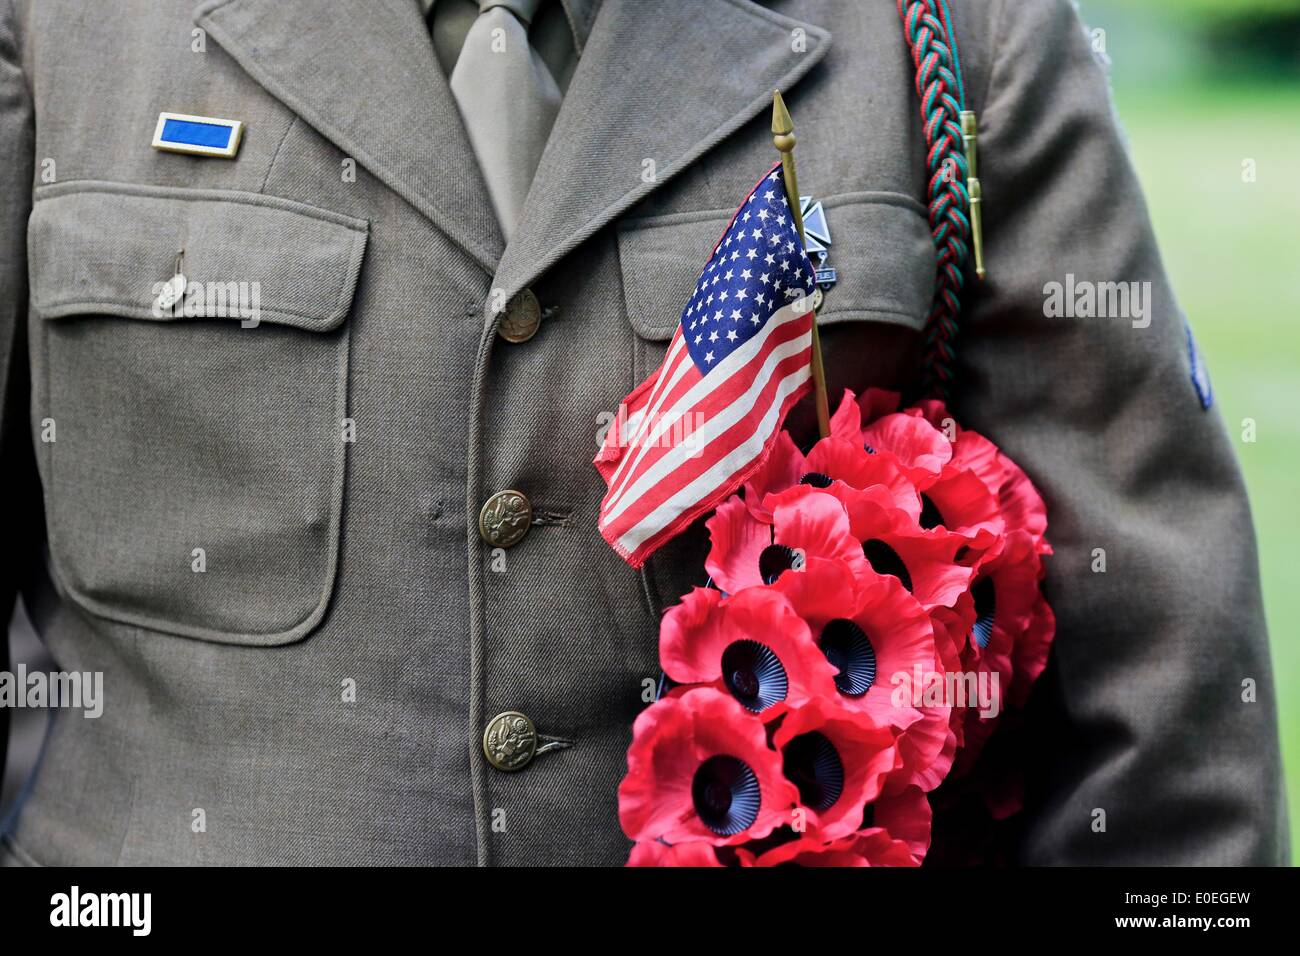 Walditch, Dorset, UK, 11th May 2014. Members of the Living History Association representing men of the 16th Infantry Regiment of the US Army carries a poppy wreath during the Church Parade. Credit:  Tom Corban/Alamy Live News - Stock Image